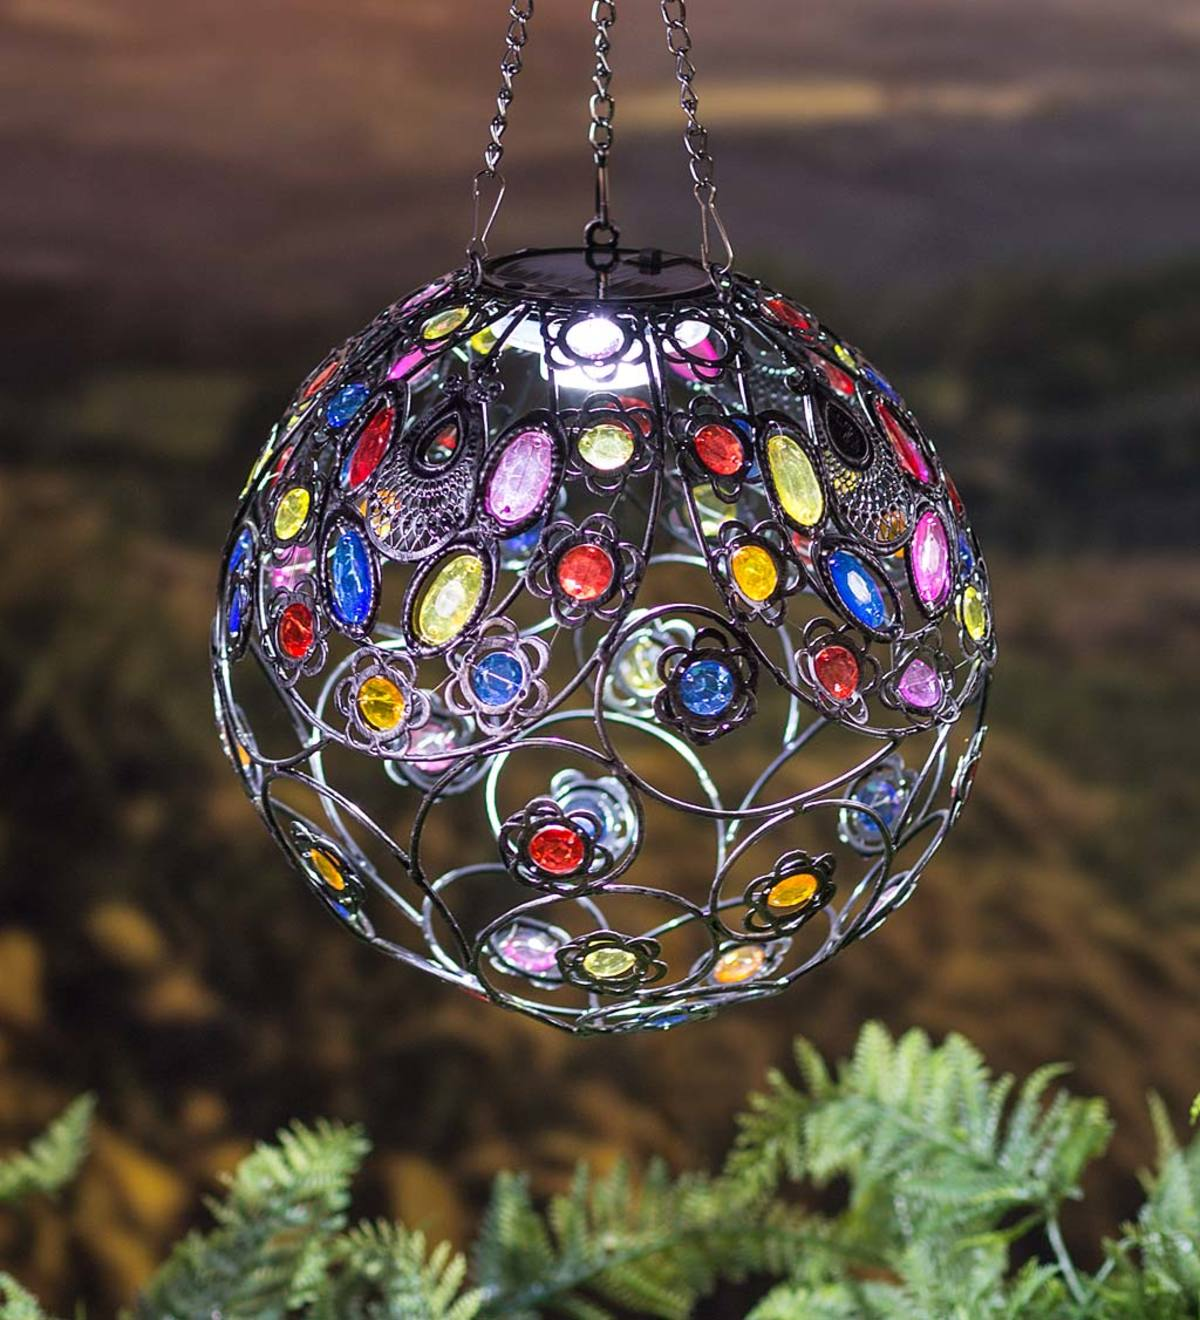 Hanging Colorful Solar Lighted Ball